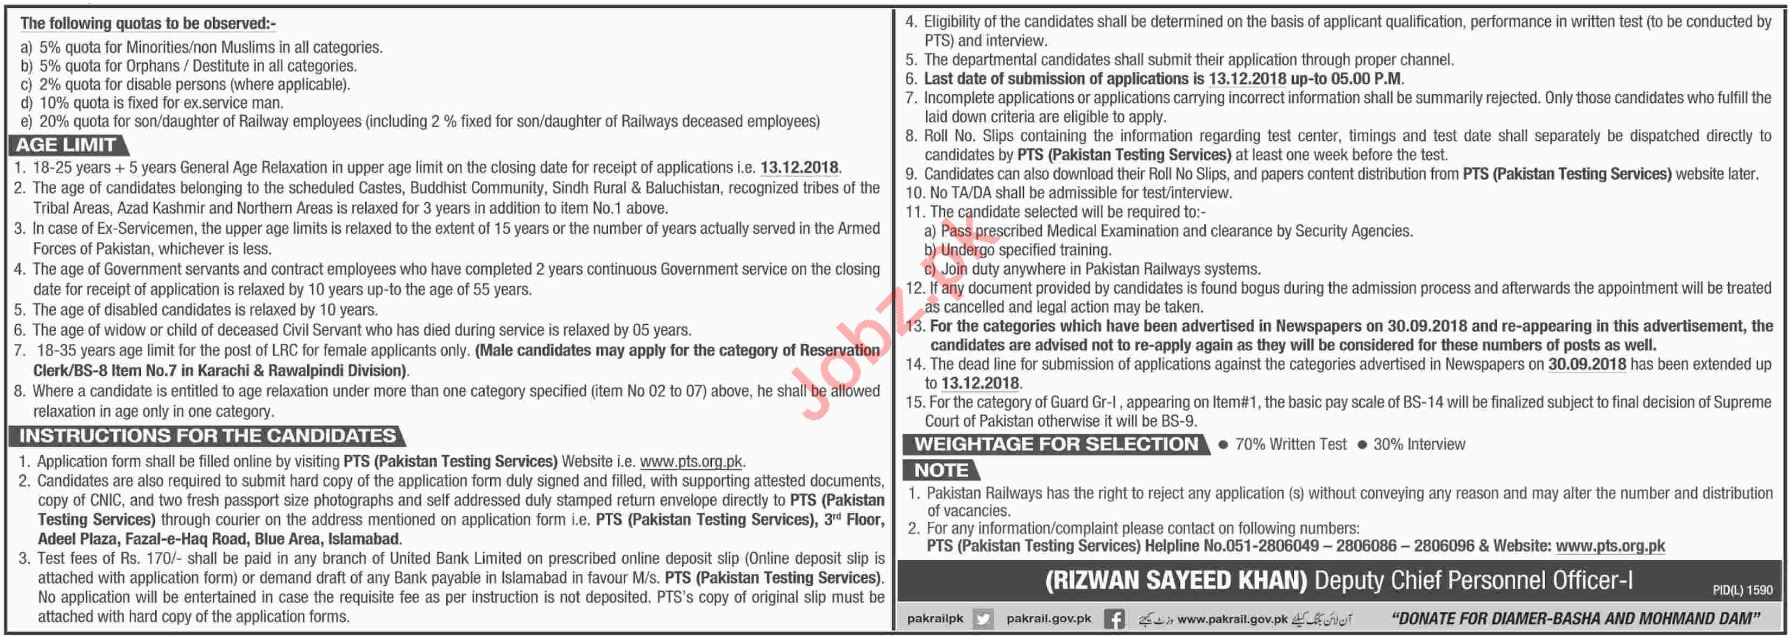 Pakistan Railways SM Group Student Job Opportunities 2019 Job